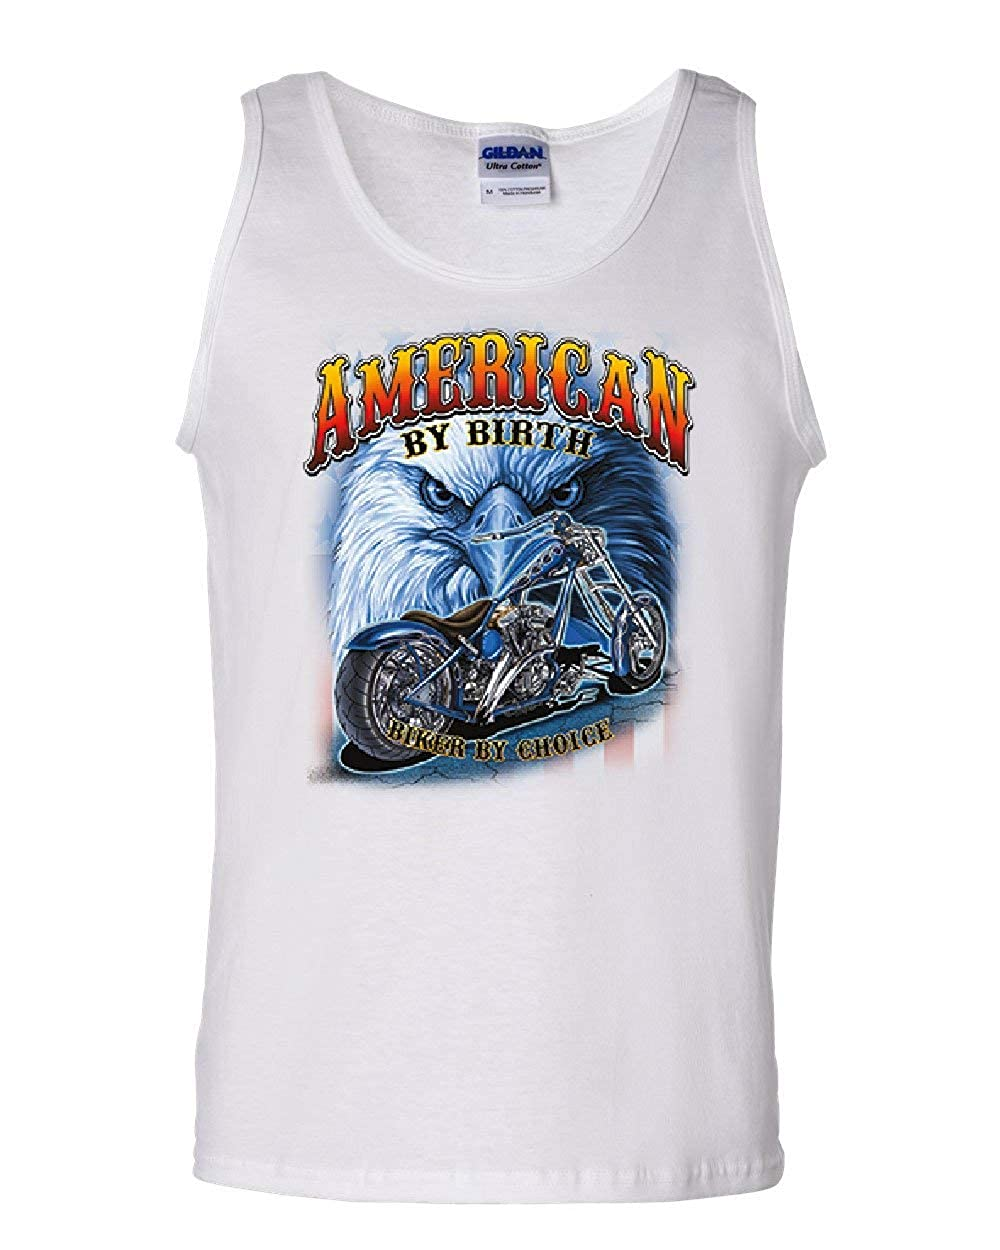 American by Birth Biker by Choice Tank Top Route 66 Bald Eagle Sleeveless